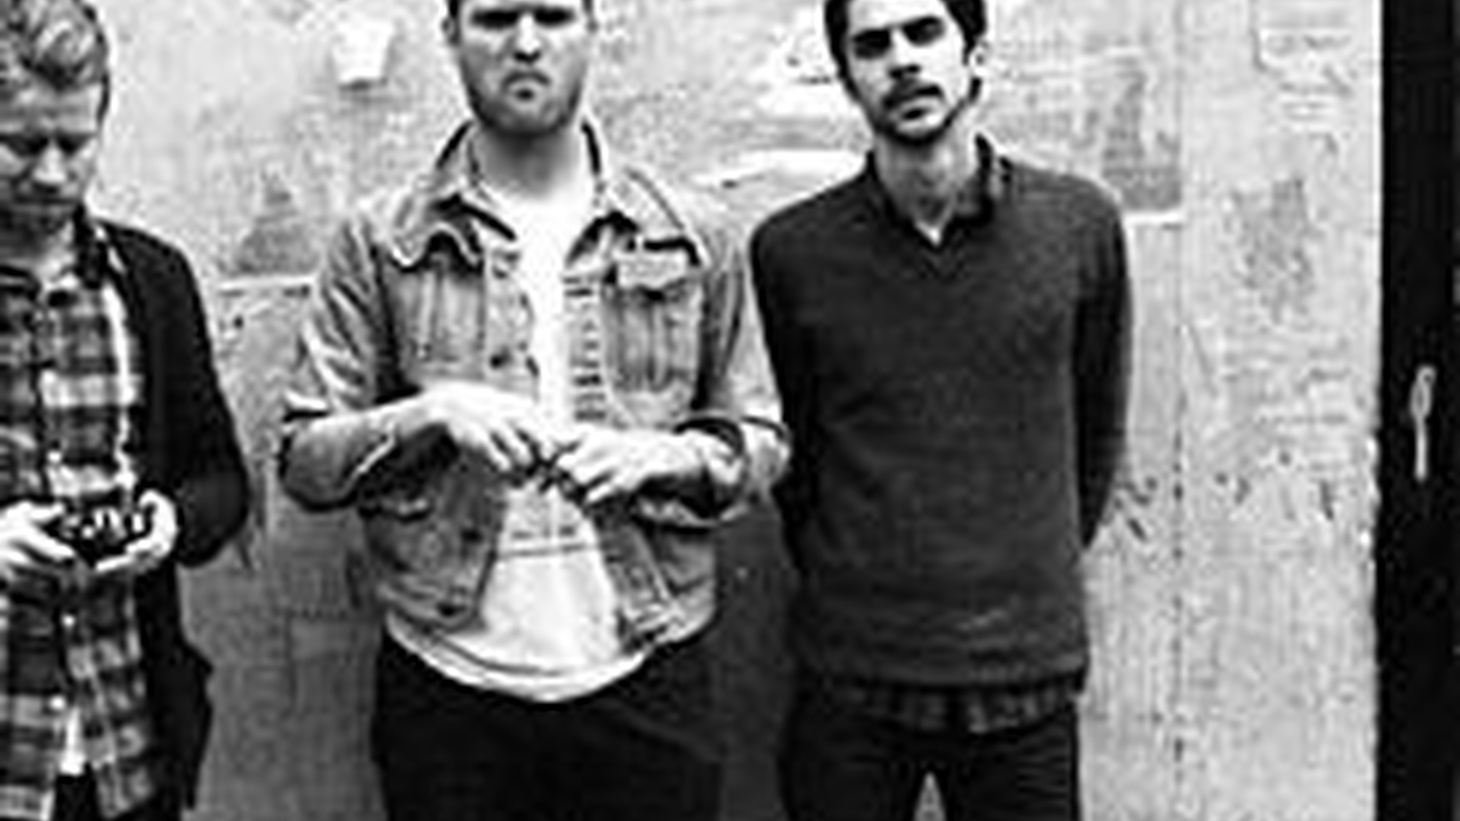 Cold War Kids formed in 2004 and quickly wrote, recorded and